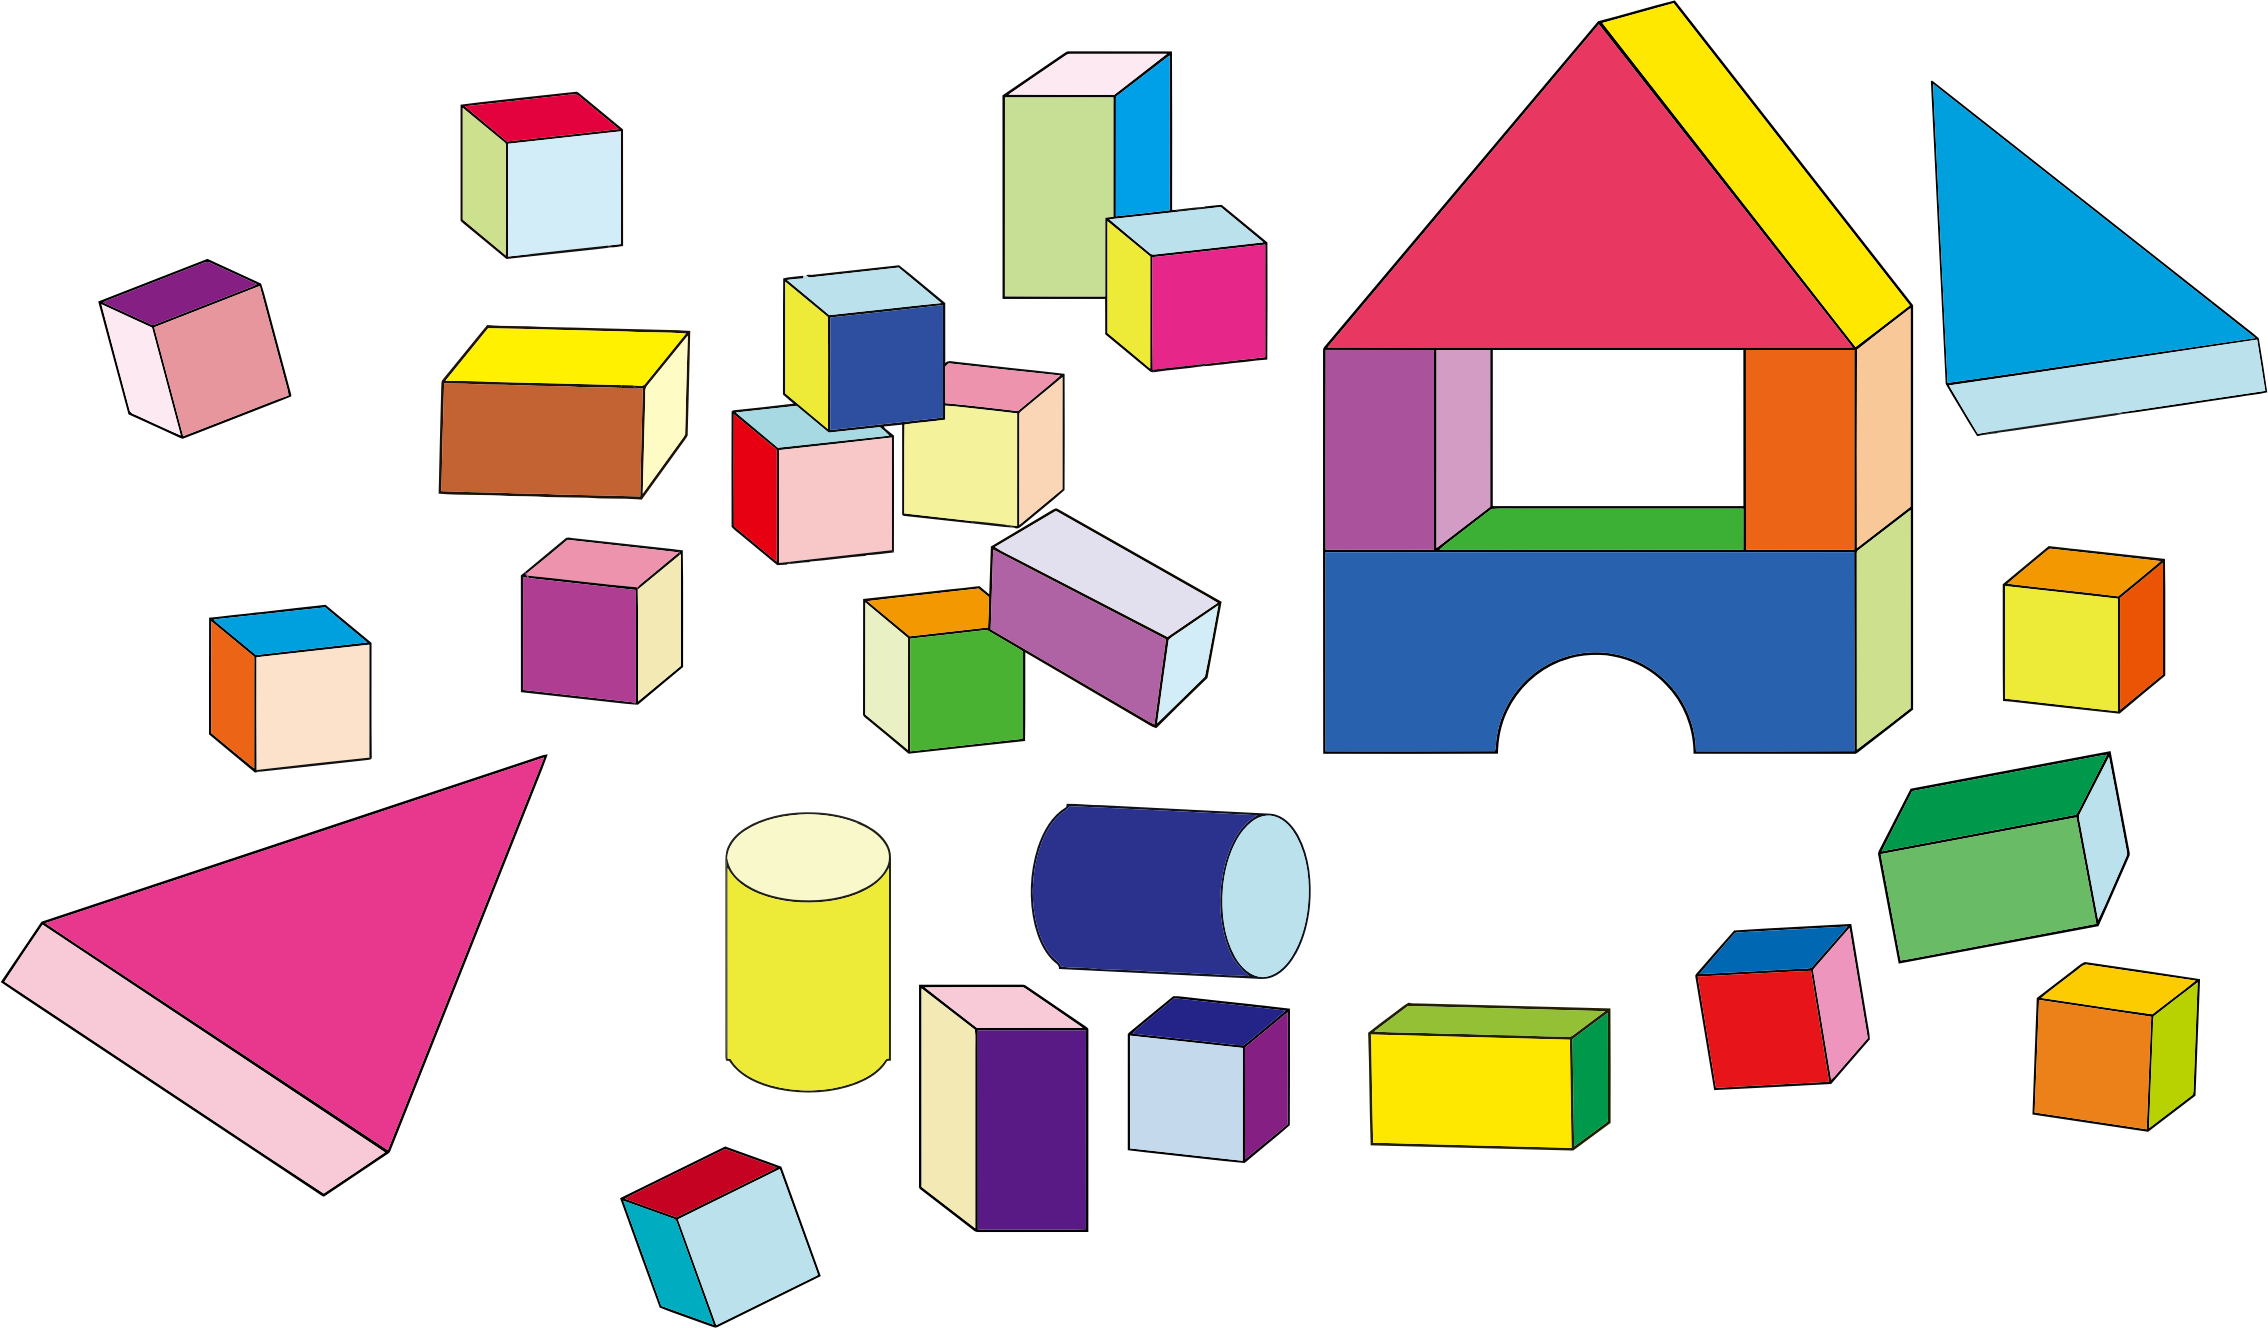 Building block png. Toys icons free and